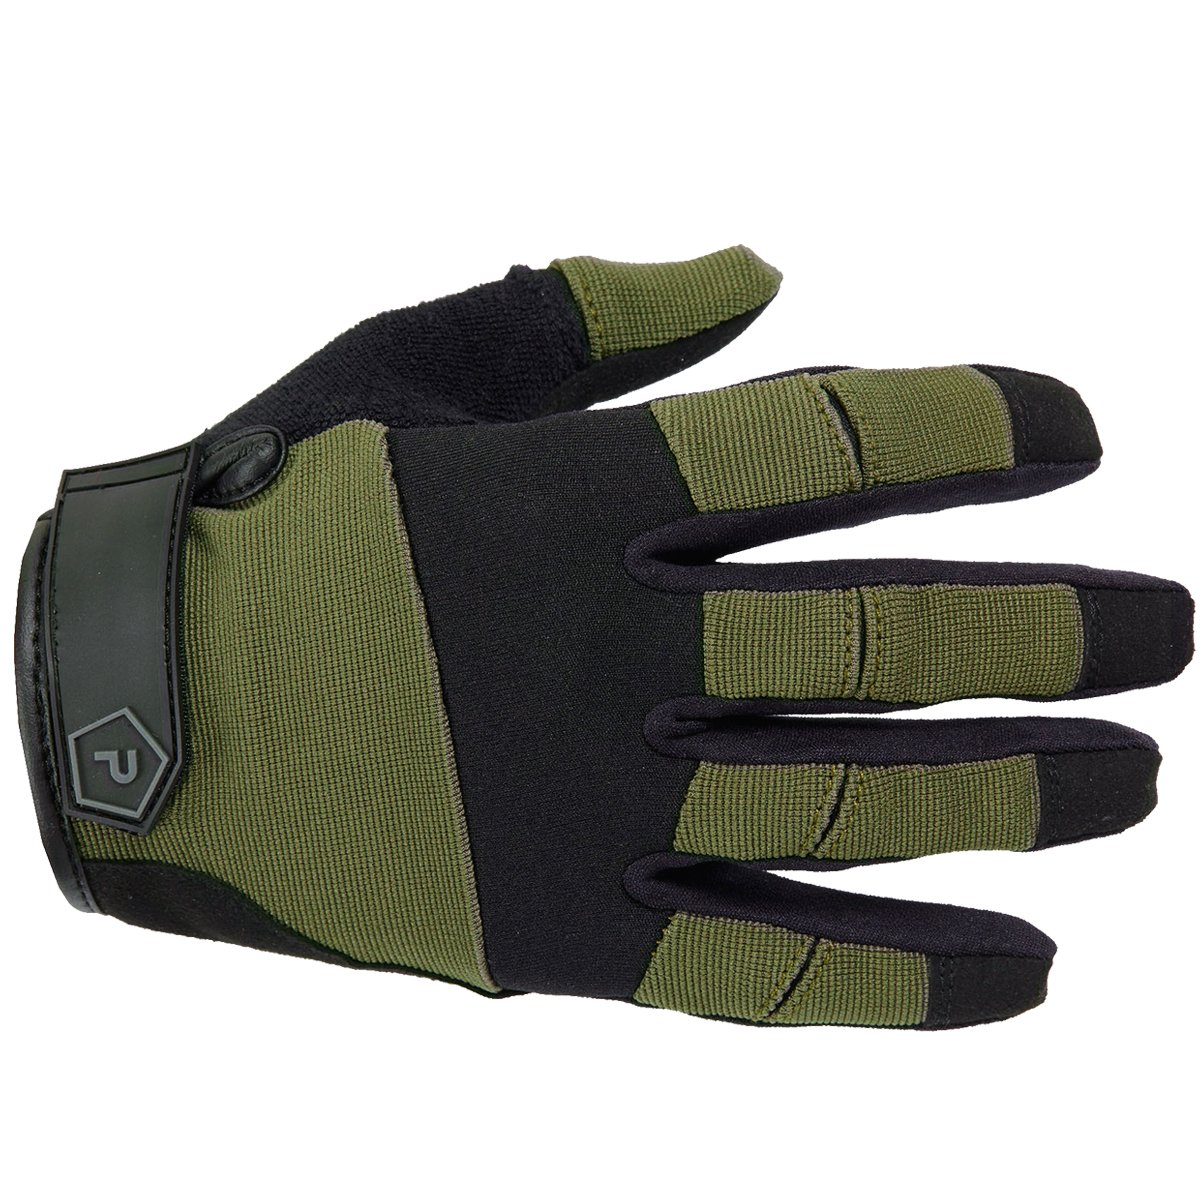 Pentagon Hombres Mongoose Guantes Oliva